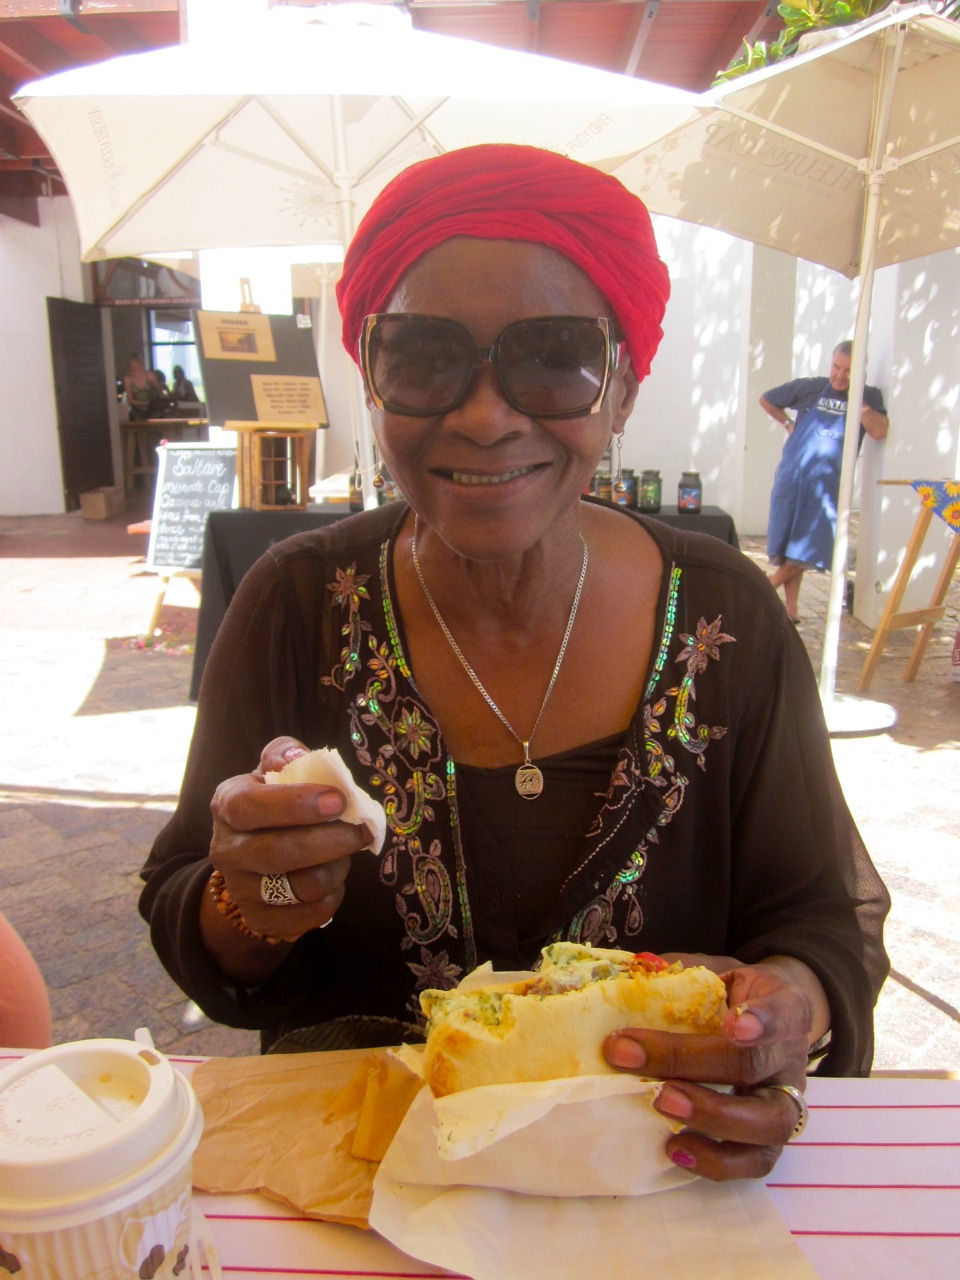 Mamma Lindy is a complete foodie. Pic of Mamma Lindy enjoying the Stellebosch Saturday food market!